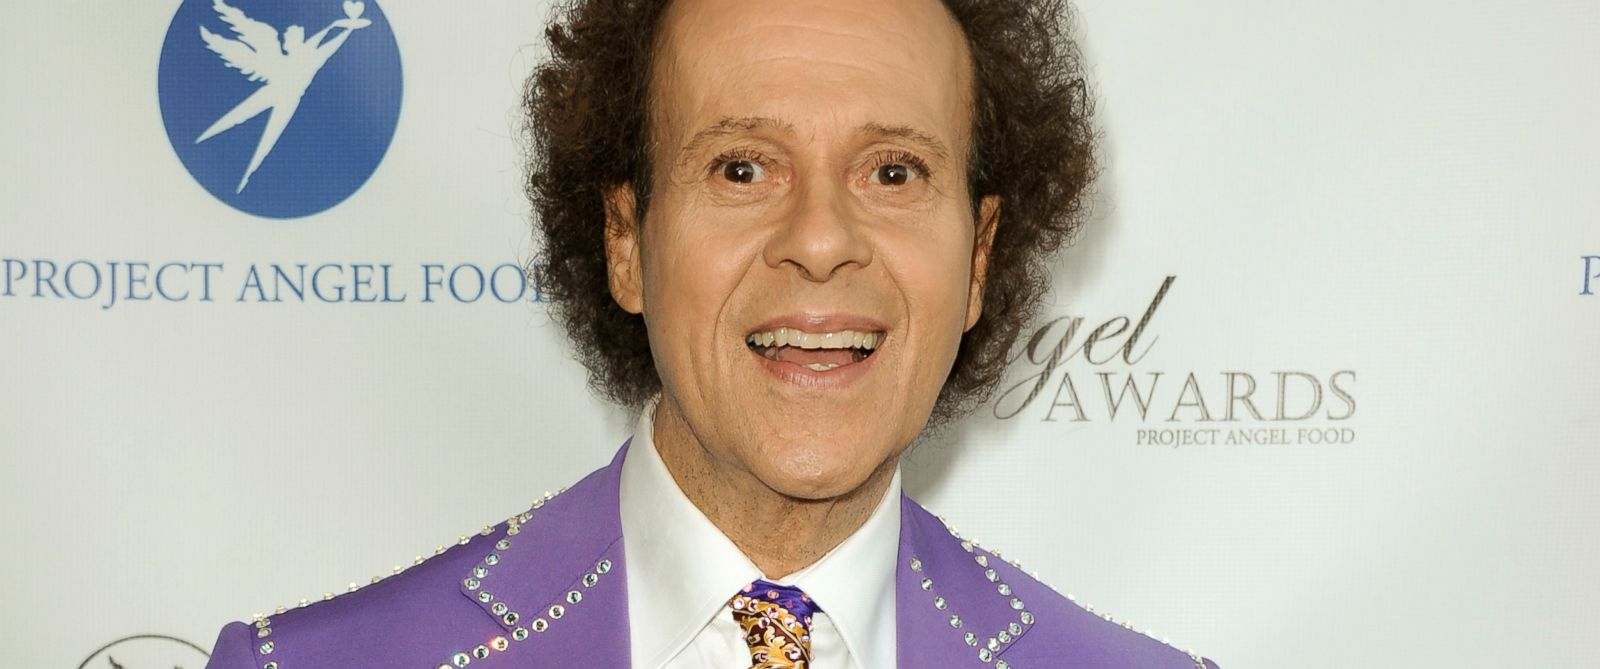 PHOTO: Richard Simmons arrives at the Project Angel Foods 2013 Angel Awards in Los Angeles, Aug. 10, 2013.